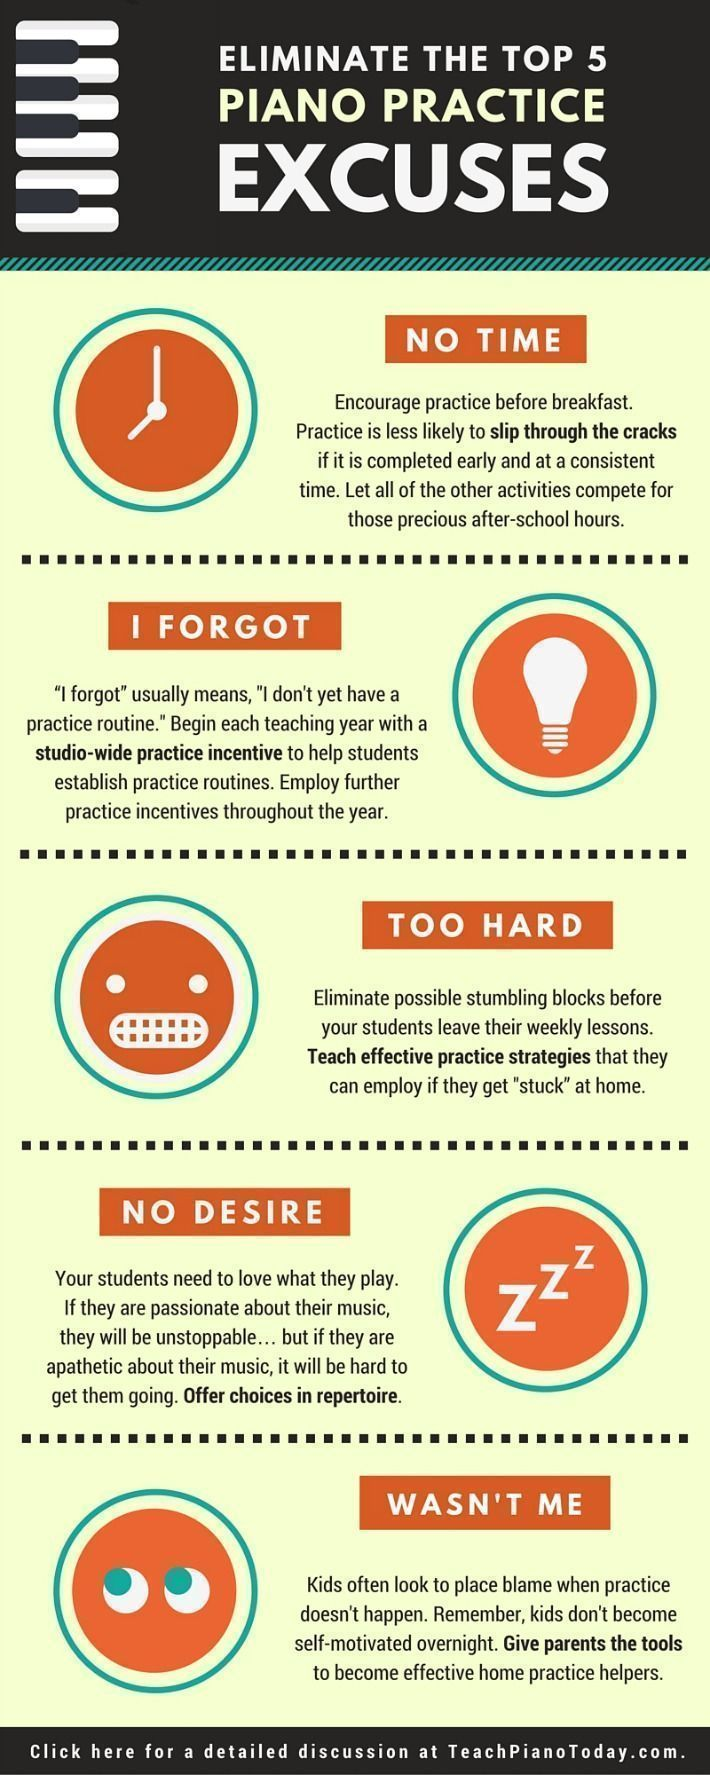 644 best learn piano and keyboard images on pinterest keyboard 644 best learn piano and keyboard images on pinterest keyboard sheet music and tools hexwebz Images